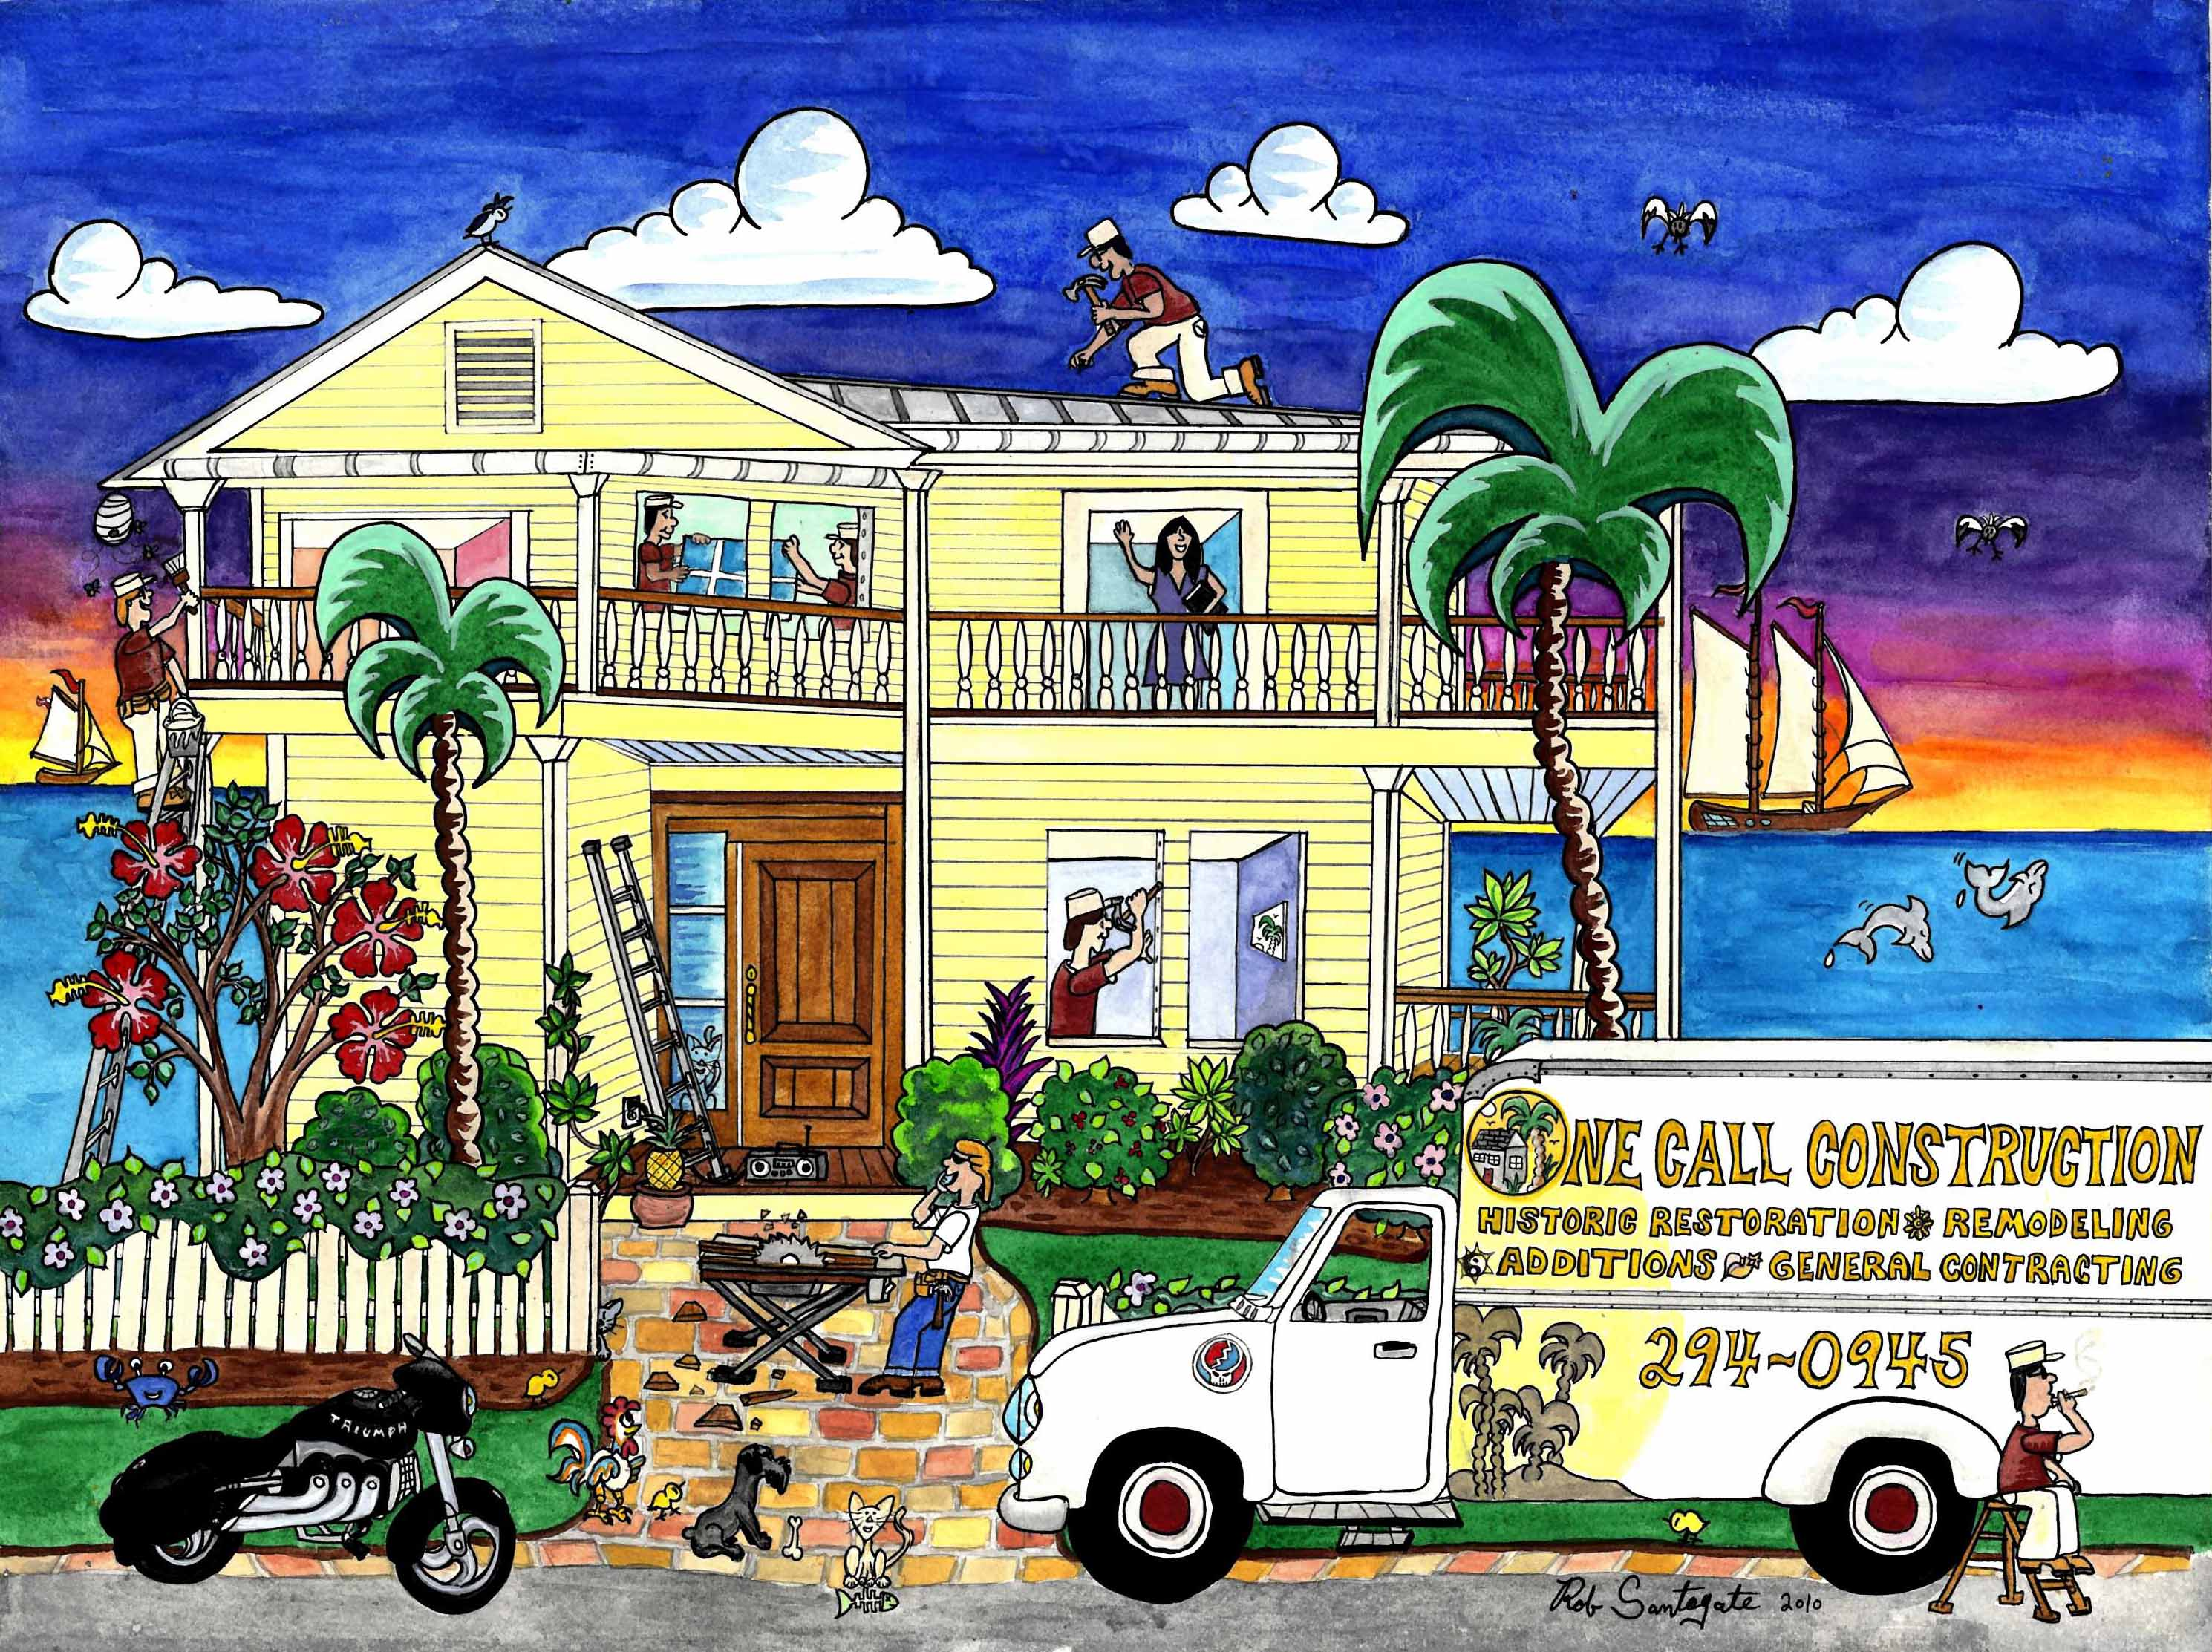 One Call Construction Painting of Key West